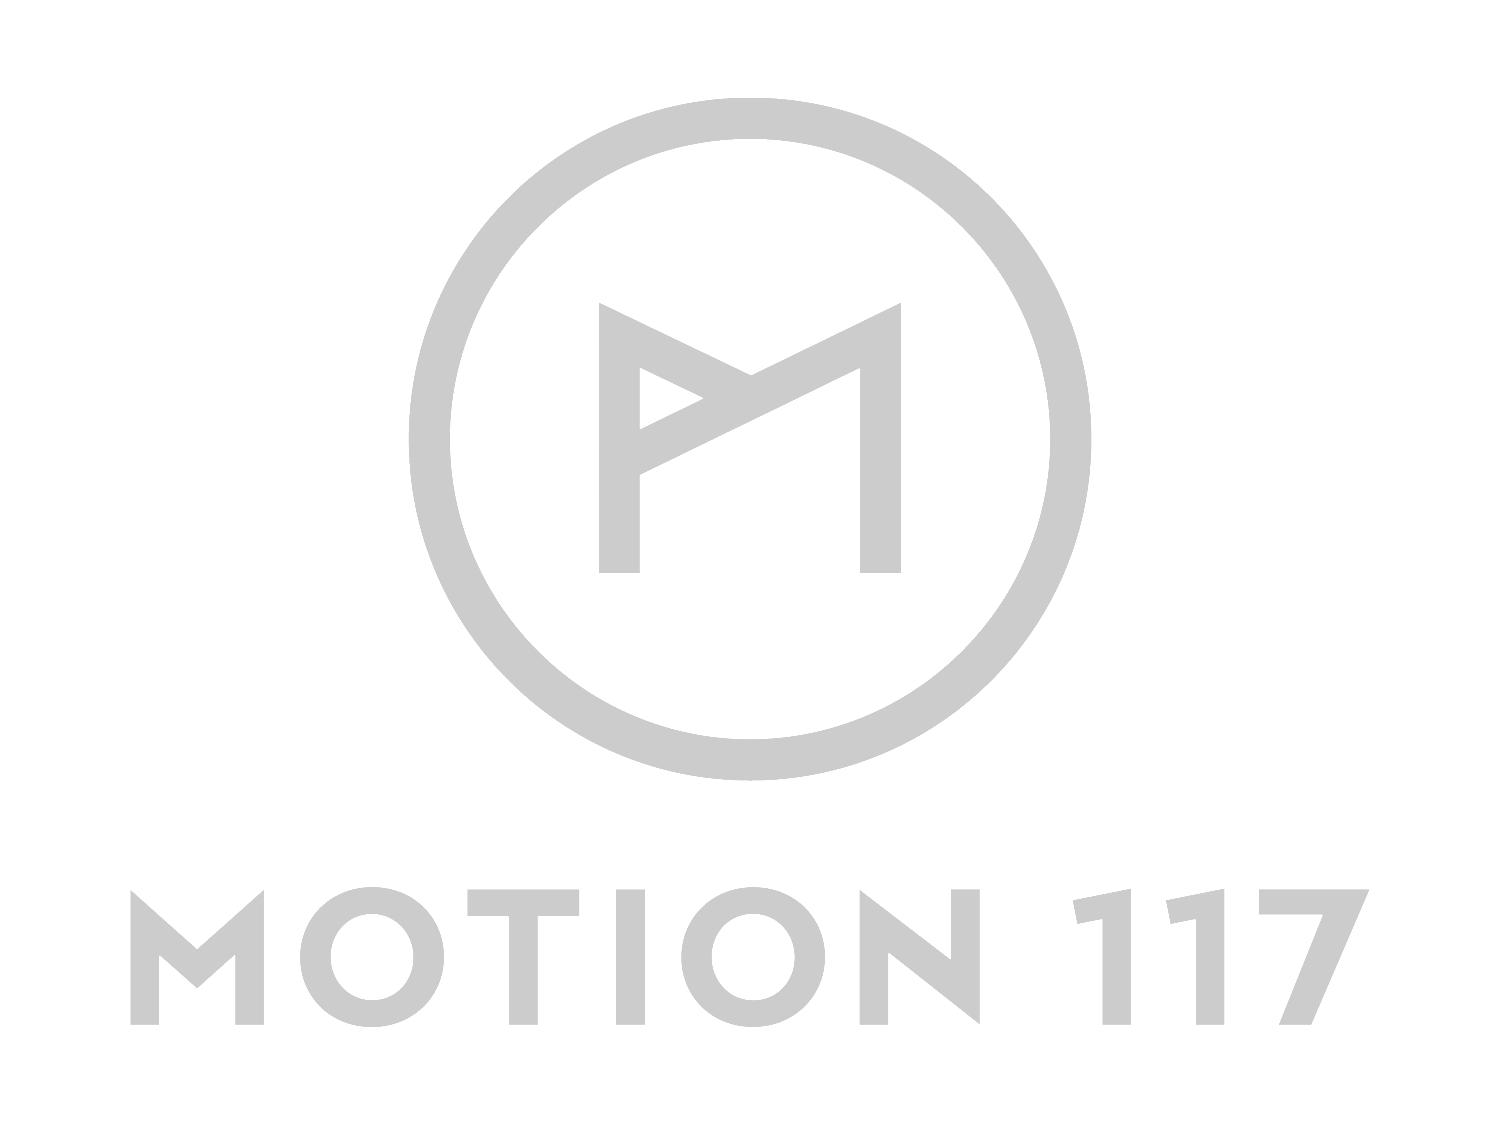 Motion 117 Productions